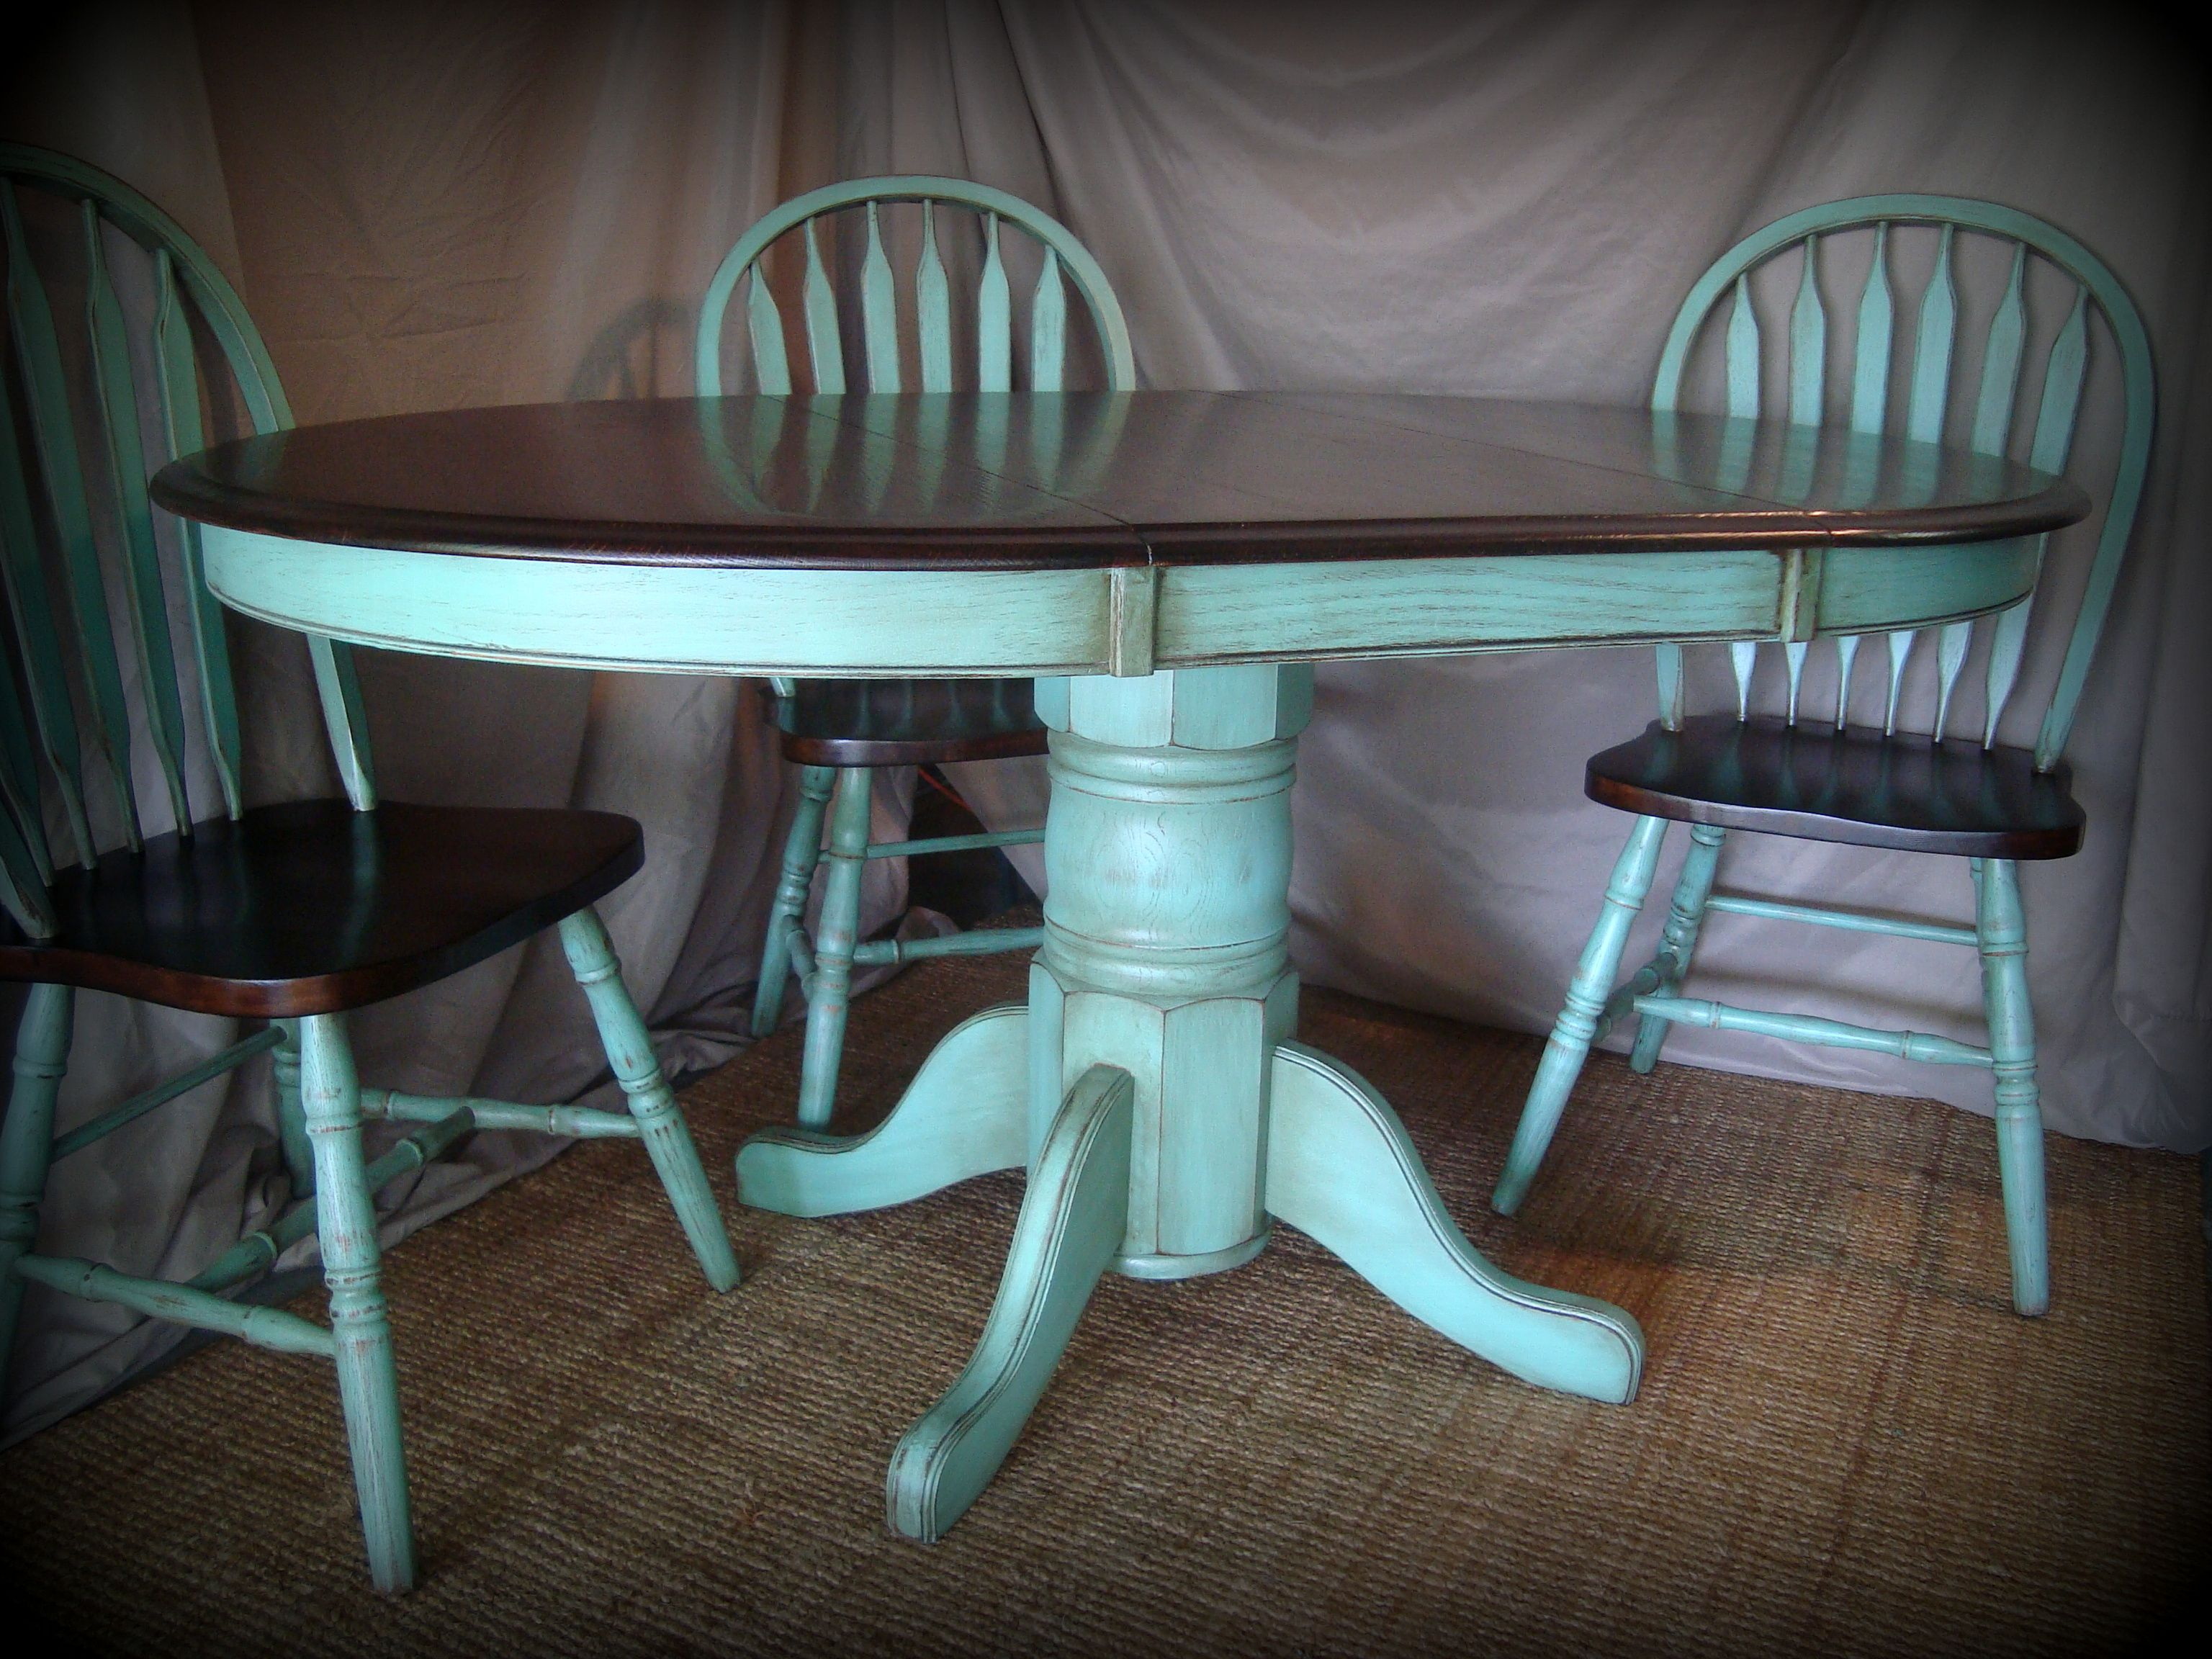 turquoise kitchen tables turquoise kitchen chairs kitchen table refinishing ideas pictures stained the table top and chairs with dark walnut